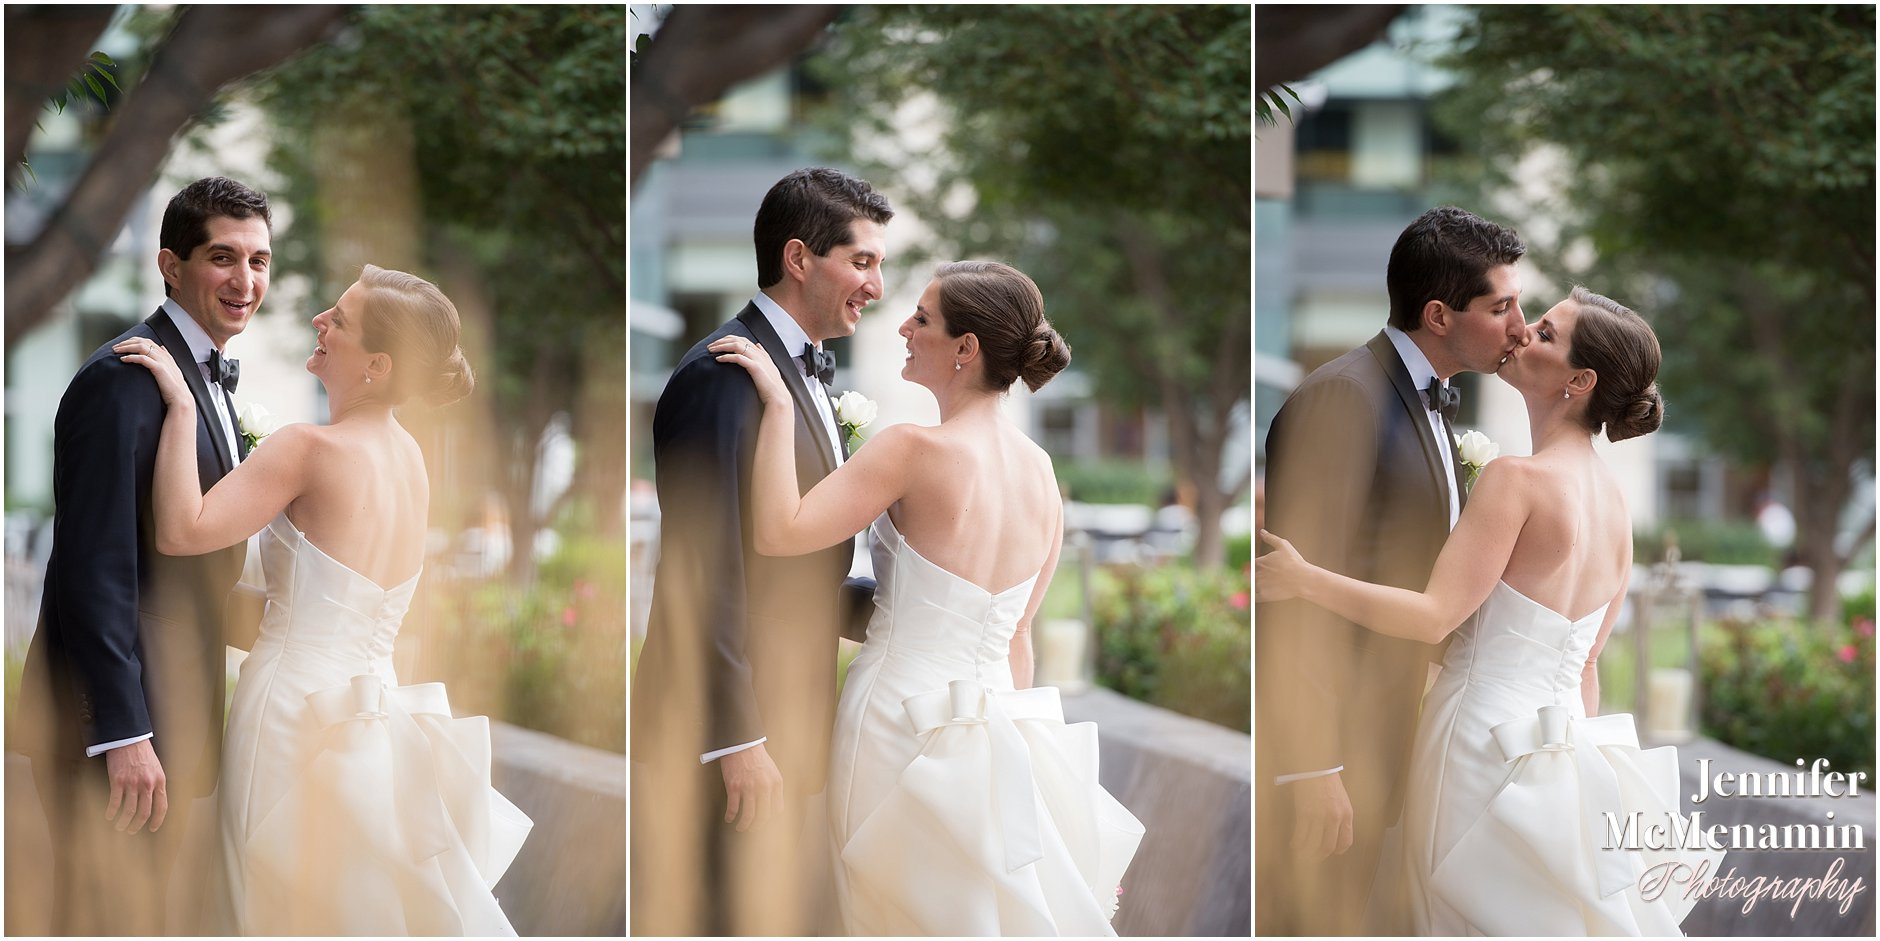 036-Jennifer-McMenamin-Photography-Baltimore-Waterfront-Marriott-wedding_0035